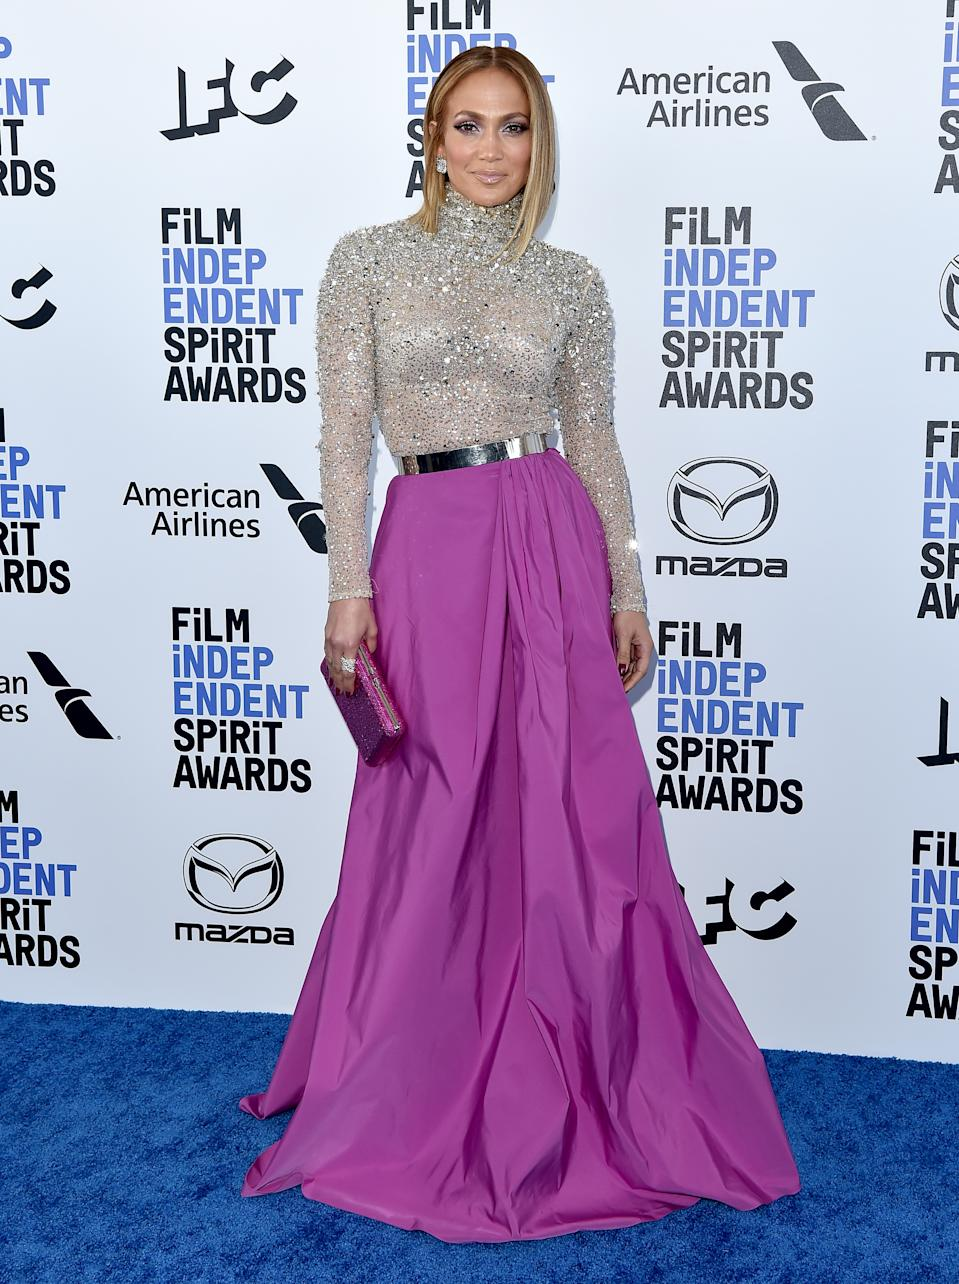 SANTA MONICA, CALIFORNIA - FEBRUARY 08: Jennifer Lopez attends the 2020 Film Independent Spirit Awards on February 08, 2020 in Santa Monica, California. (Photo by Axelle/Bauer-Griffin/FilmMagic)